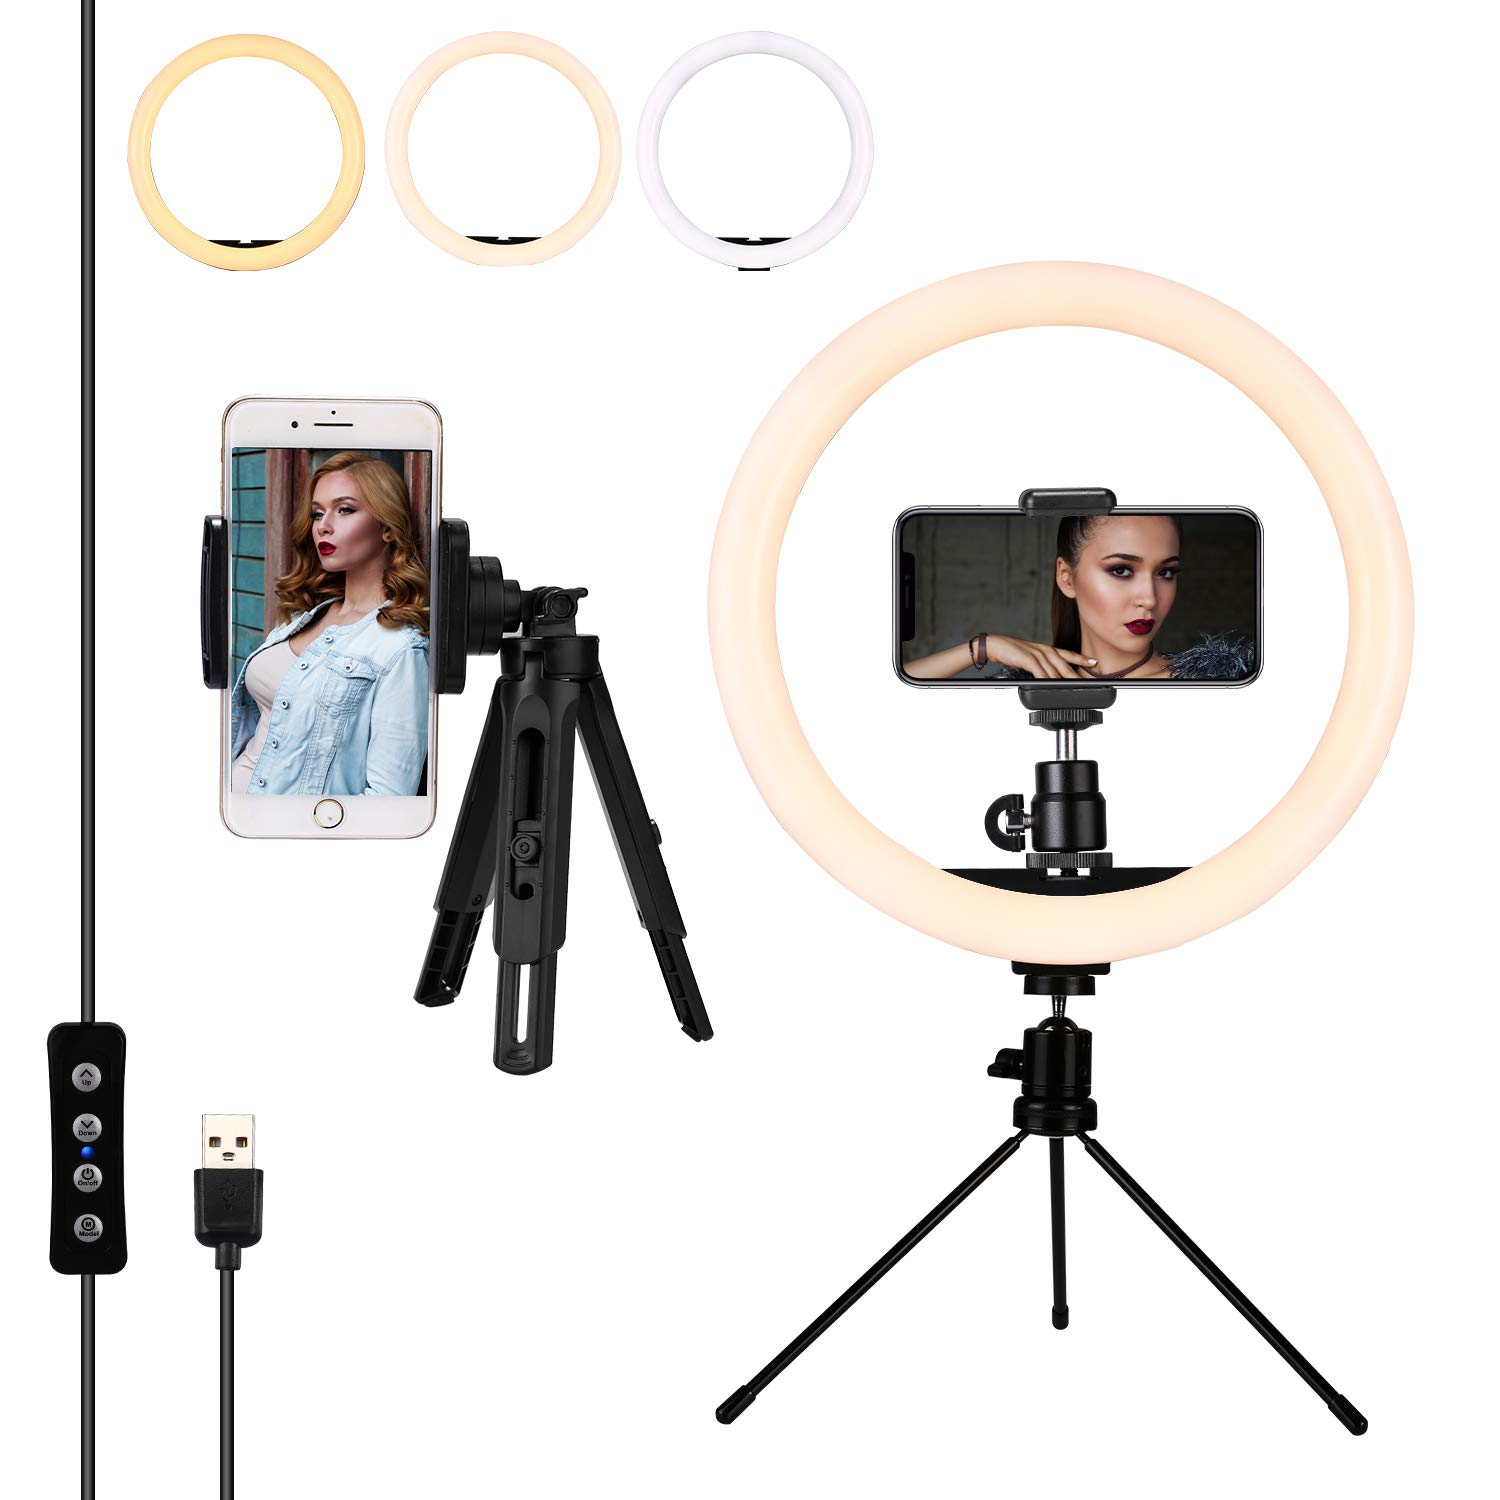 12 Inches LED Ring Light with Stand and 2 Cell Phone Holder, Brightness Dimmable from 10% to 100% for YouTube Video Shooting, Live Streaming, Selfie, Vlog, Makeup with 3 Color Modes,Black,Acrlux